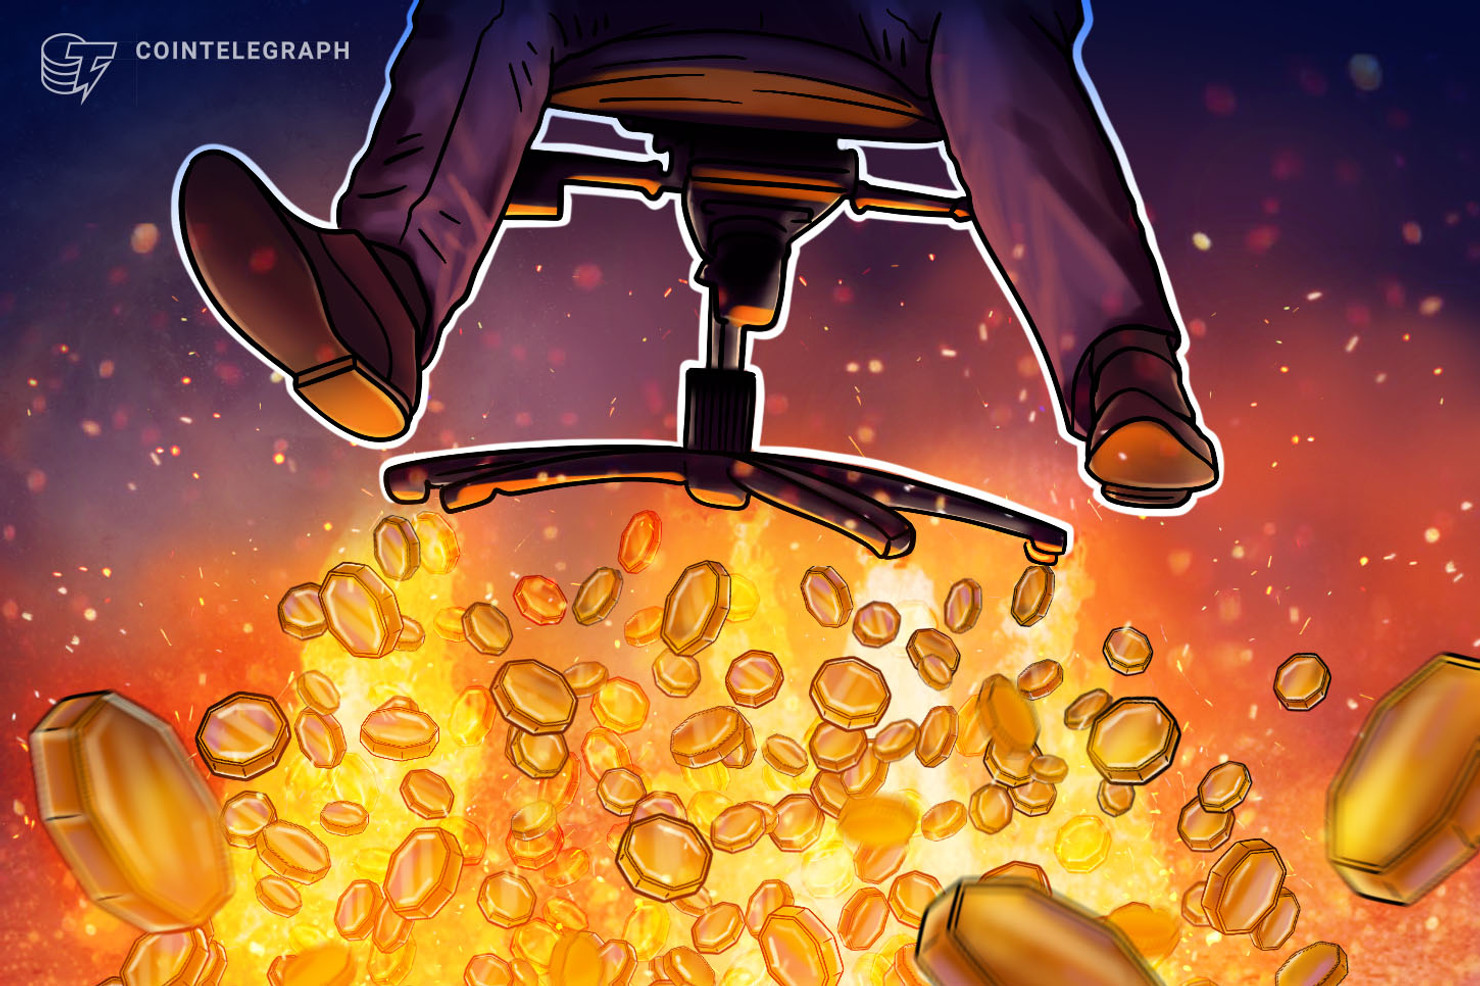 Crypto Hedge Fund Goes Belly Up After Bitcoin Price Drop to $3.8K